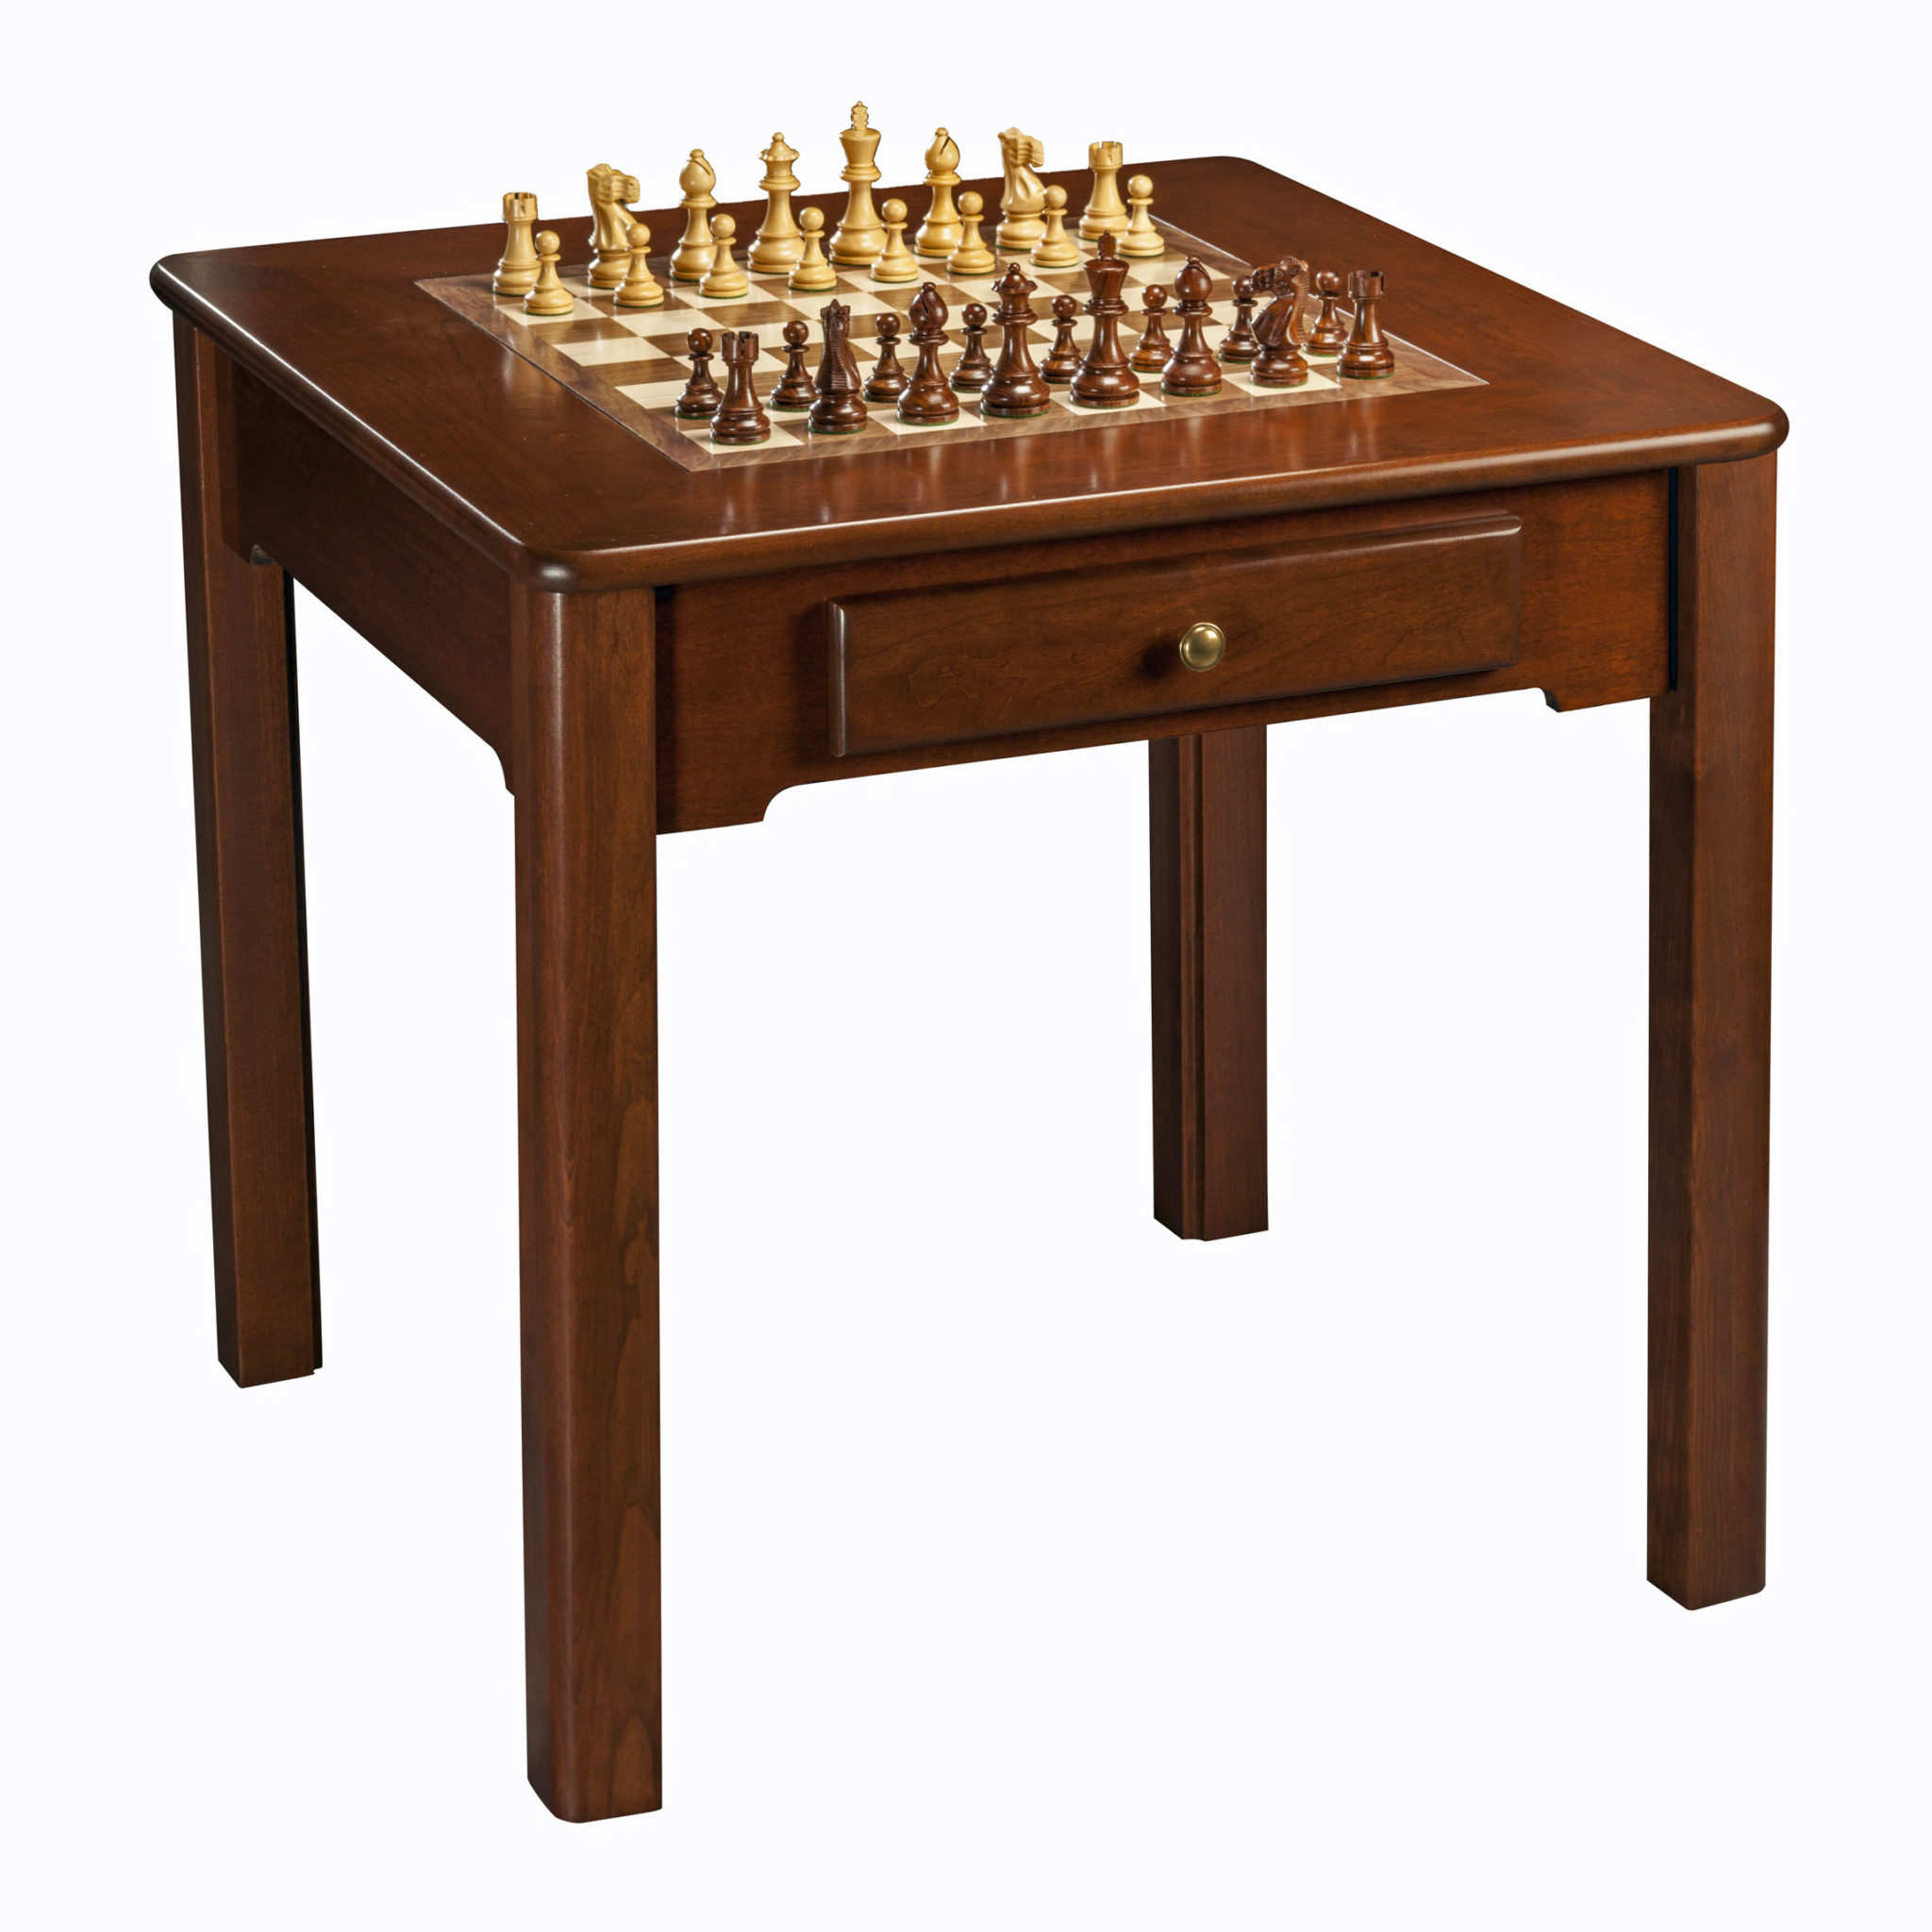 Classic game table solid cherry wood chess checkers